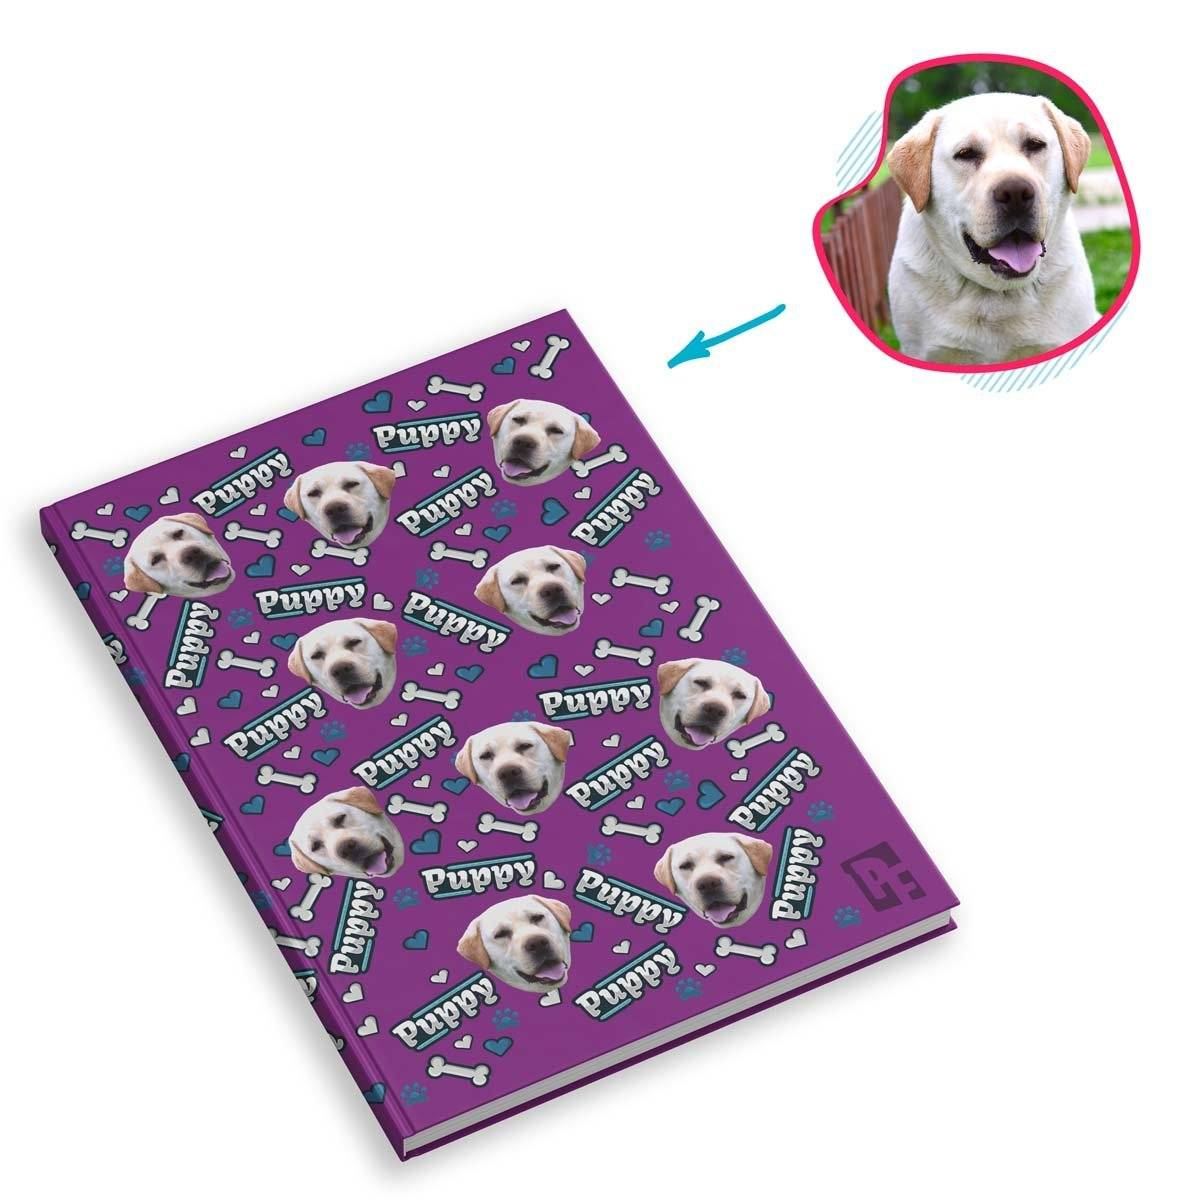 purple Puppy Notebook personalized with photo of face printed on them